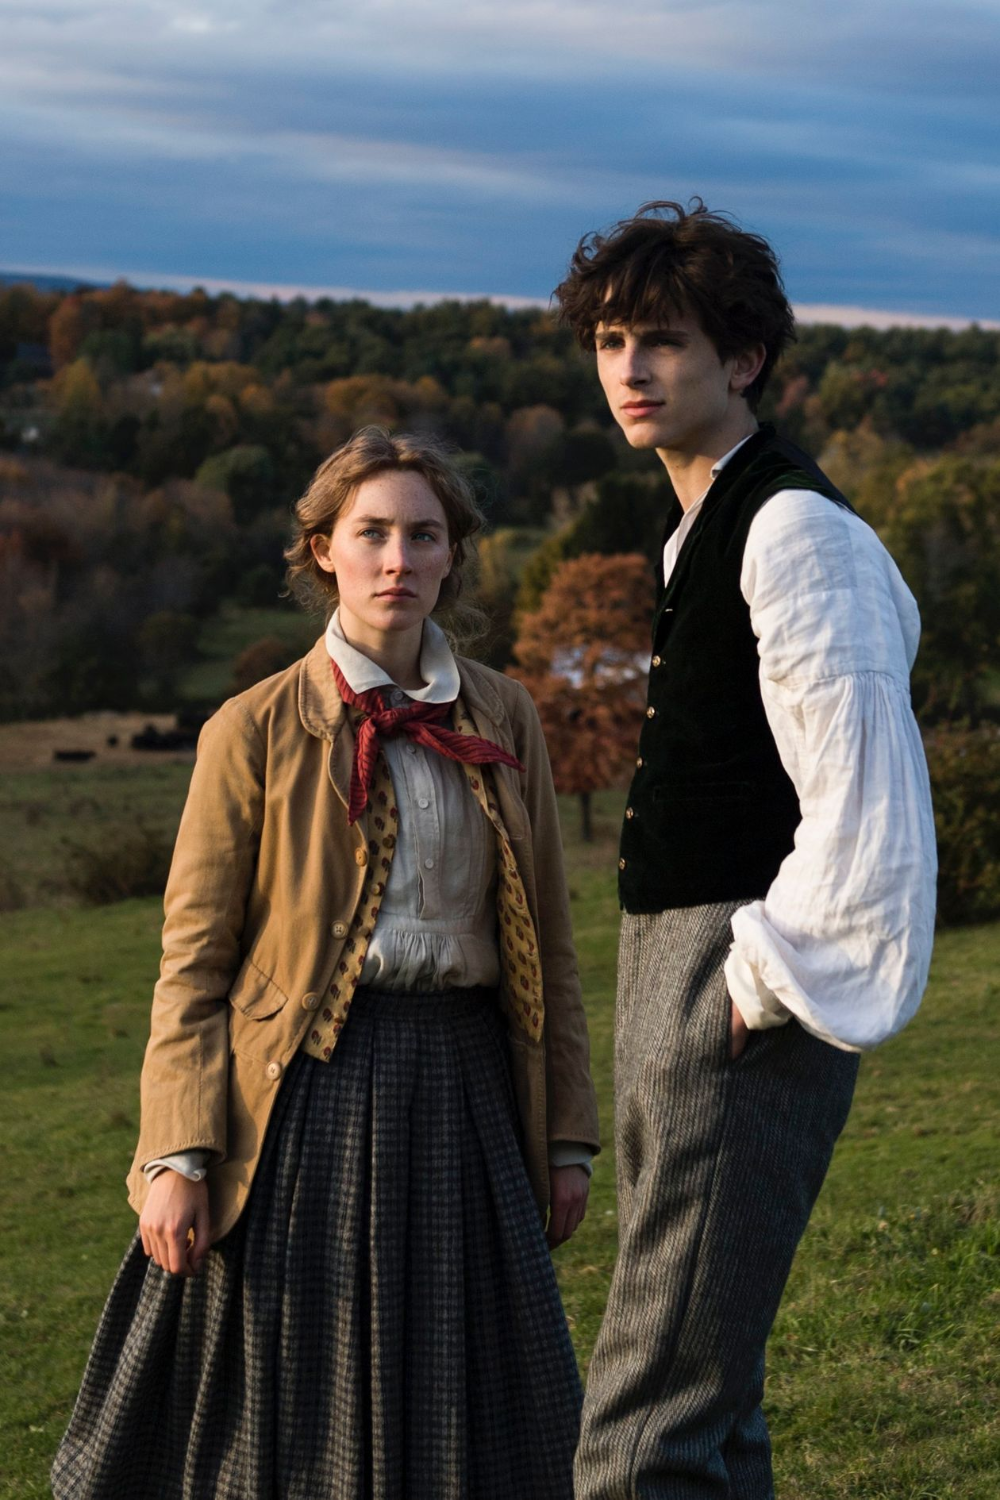 The New 'Little Women' Will Make You Want to Wear 1860s Fashion